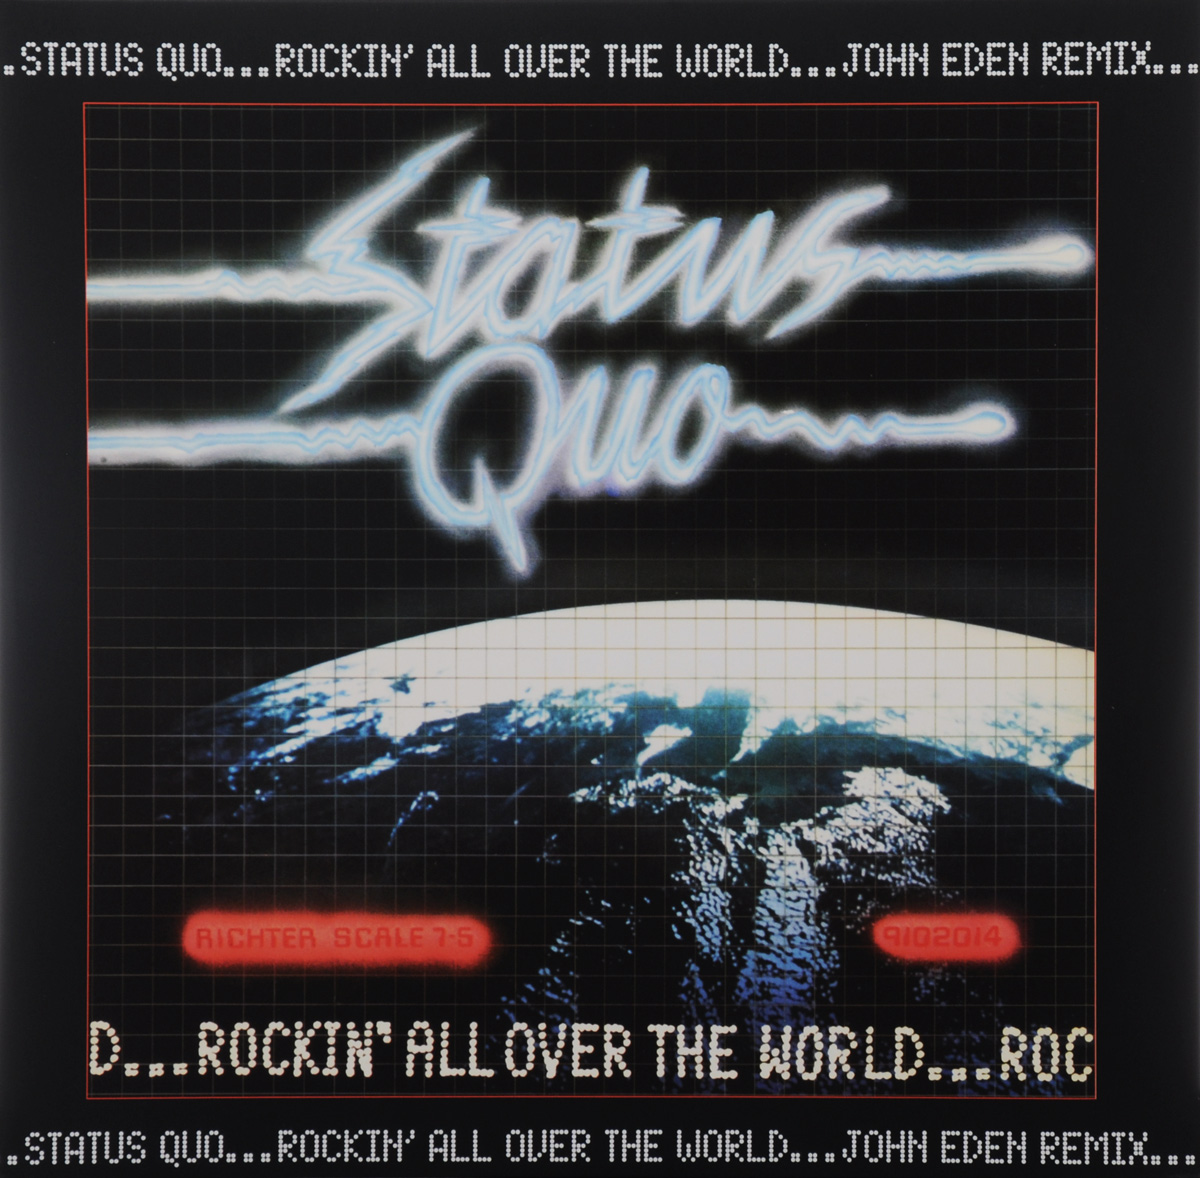 Status Quo Status Quo. Rockin' All Over The World (2 LP) guinness world records the videogame wii